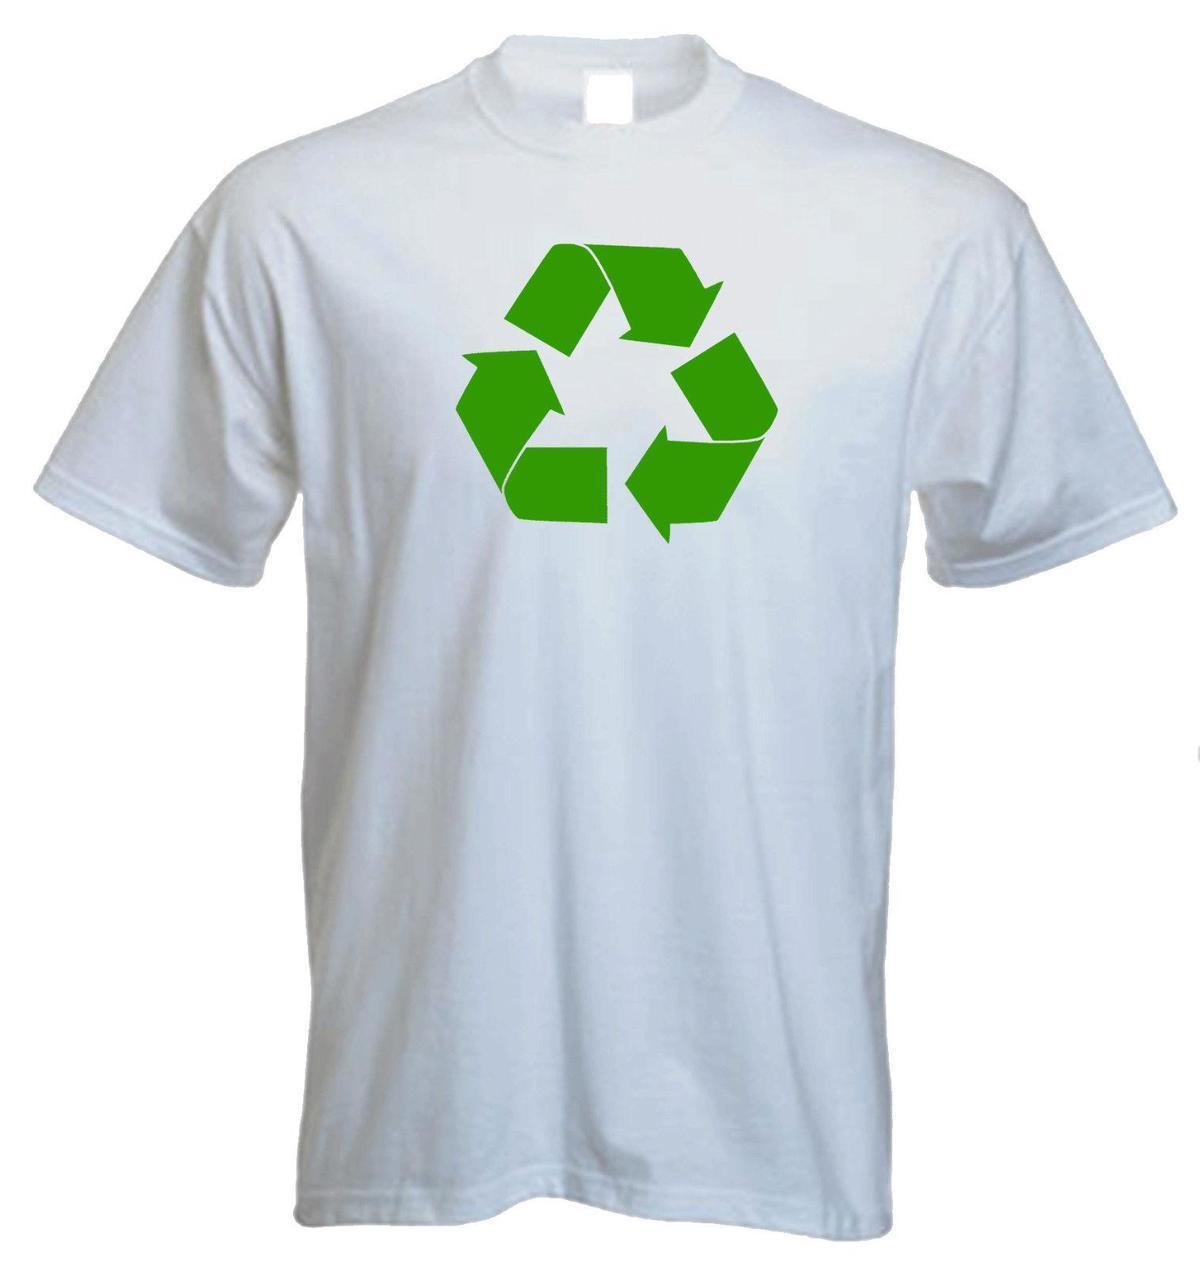 Recycle Symbolbig Bang Theory Funt Shirt Best T Shirt Sites T